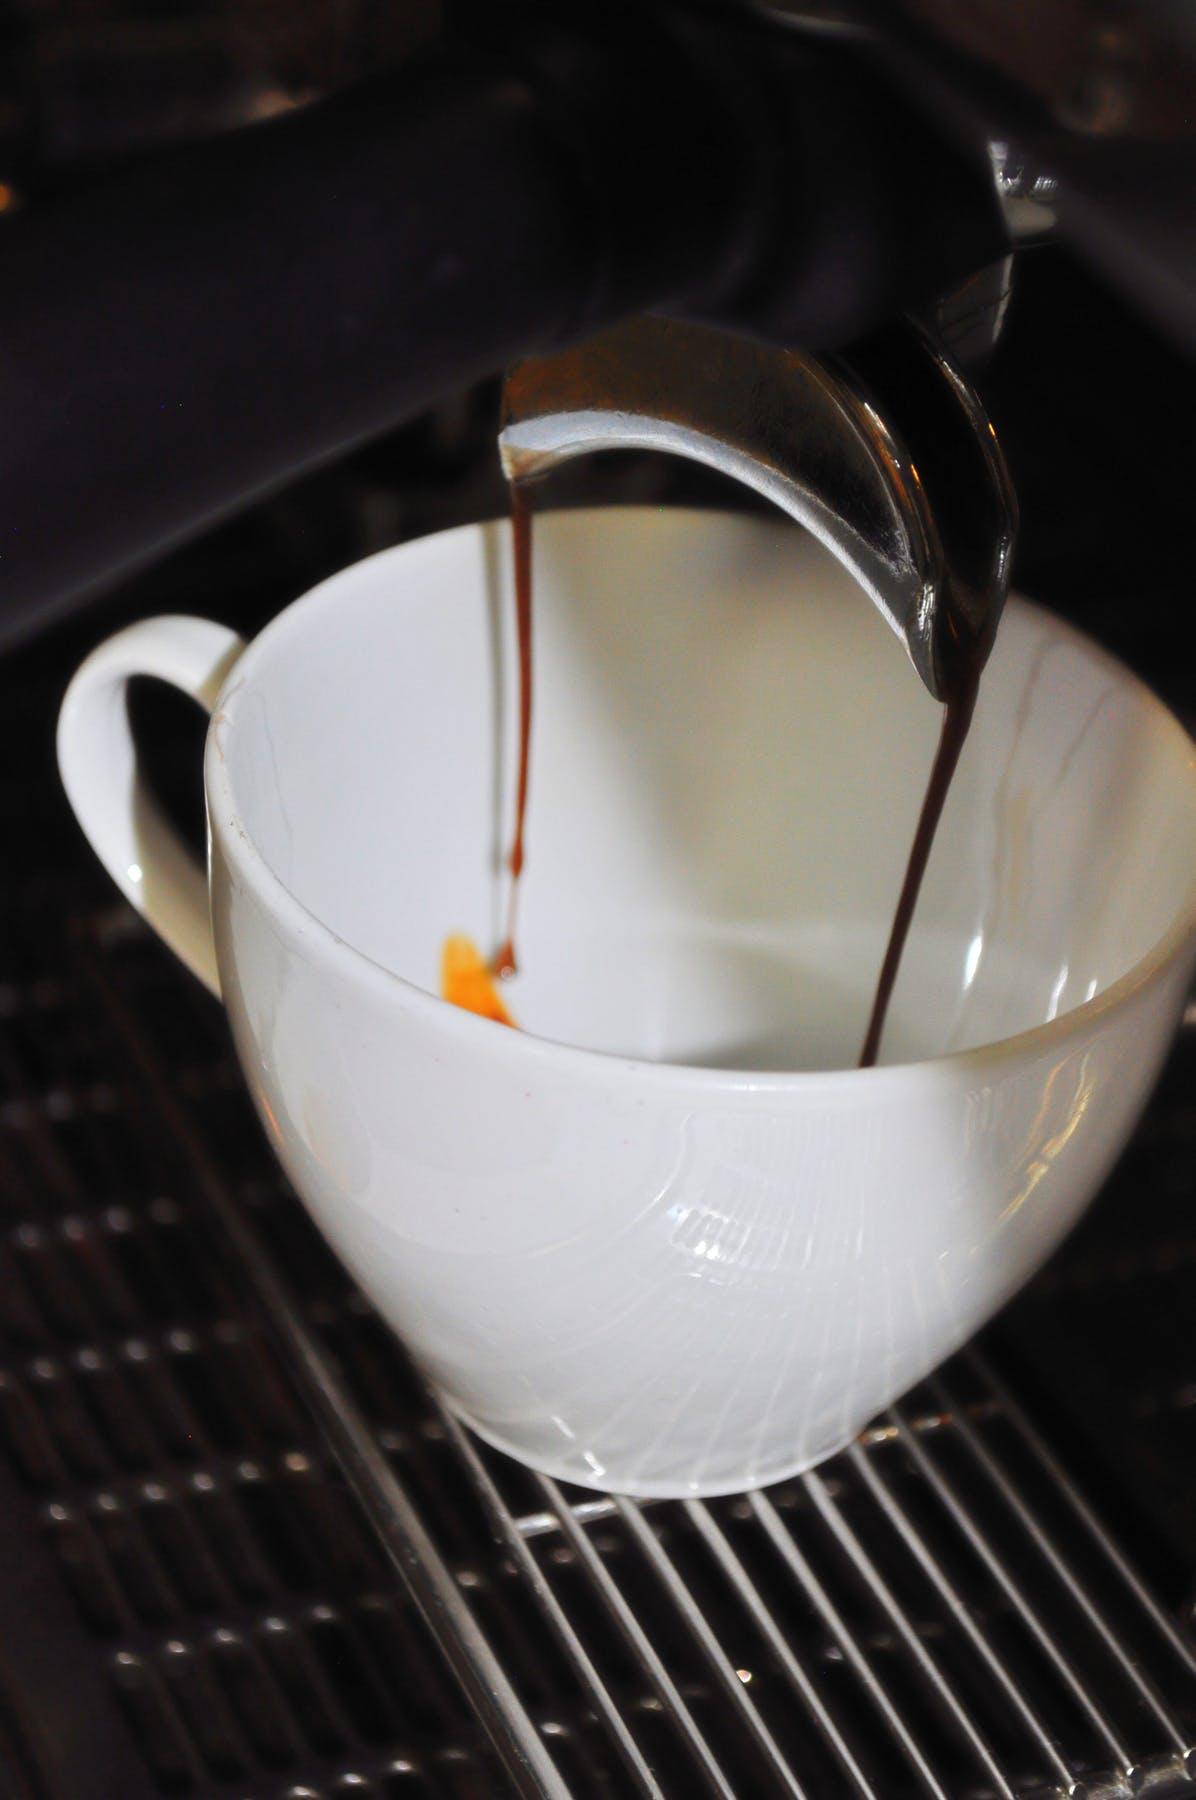 a close view of espresso dripping